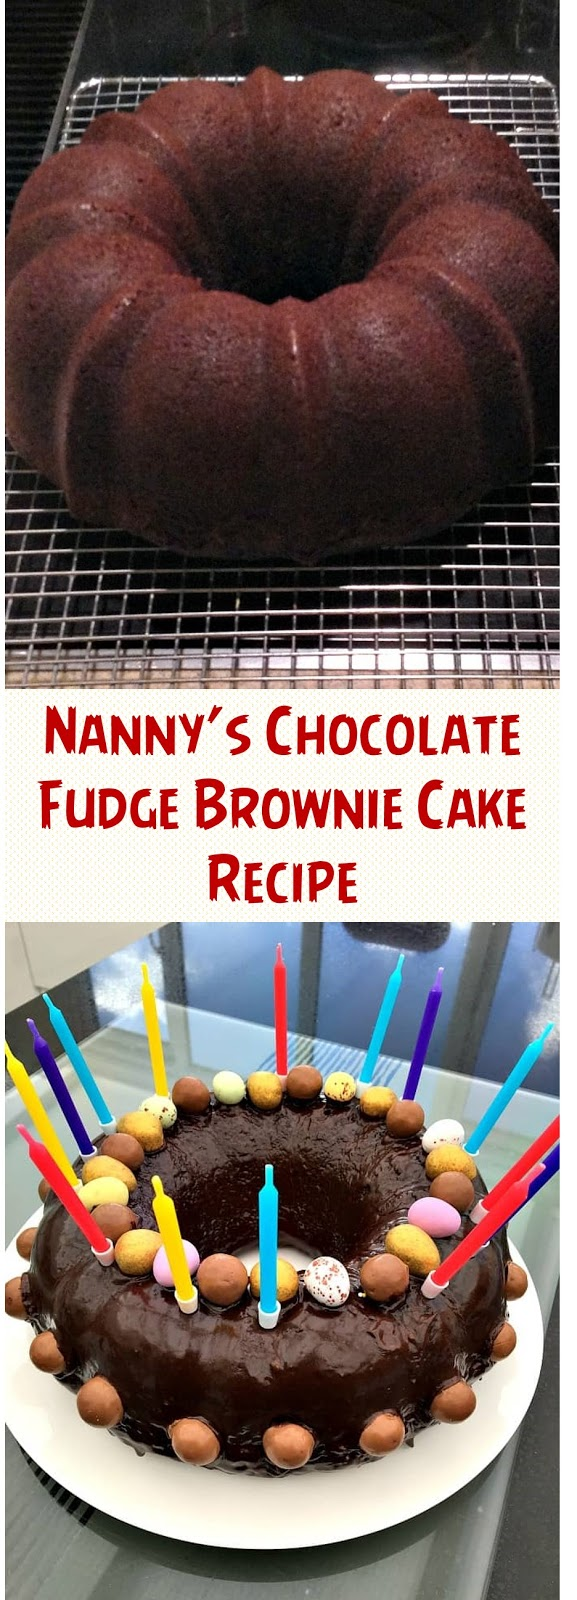 Nanny's Chocolate Fudge Brownie Cake Recipe